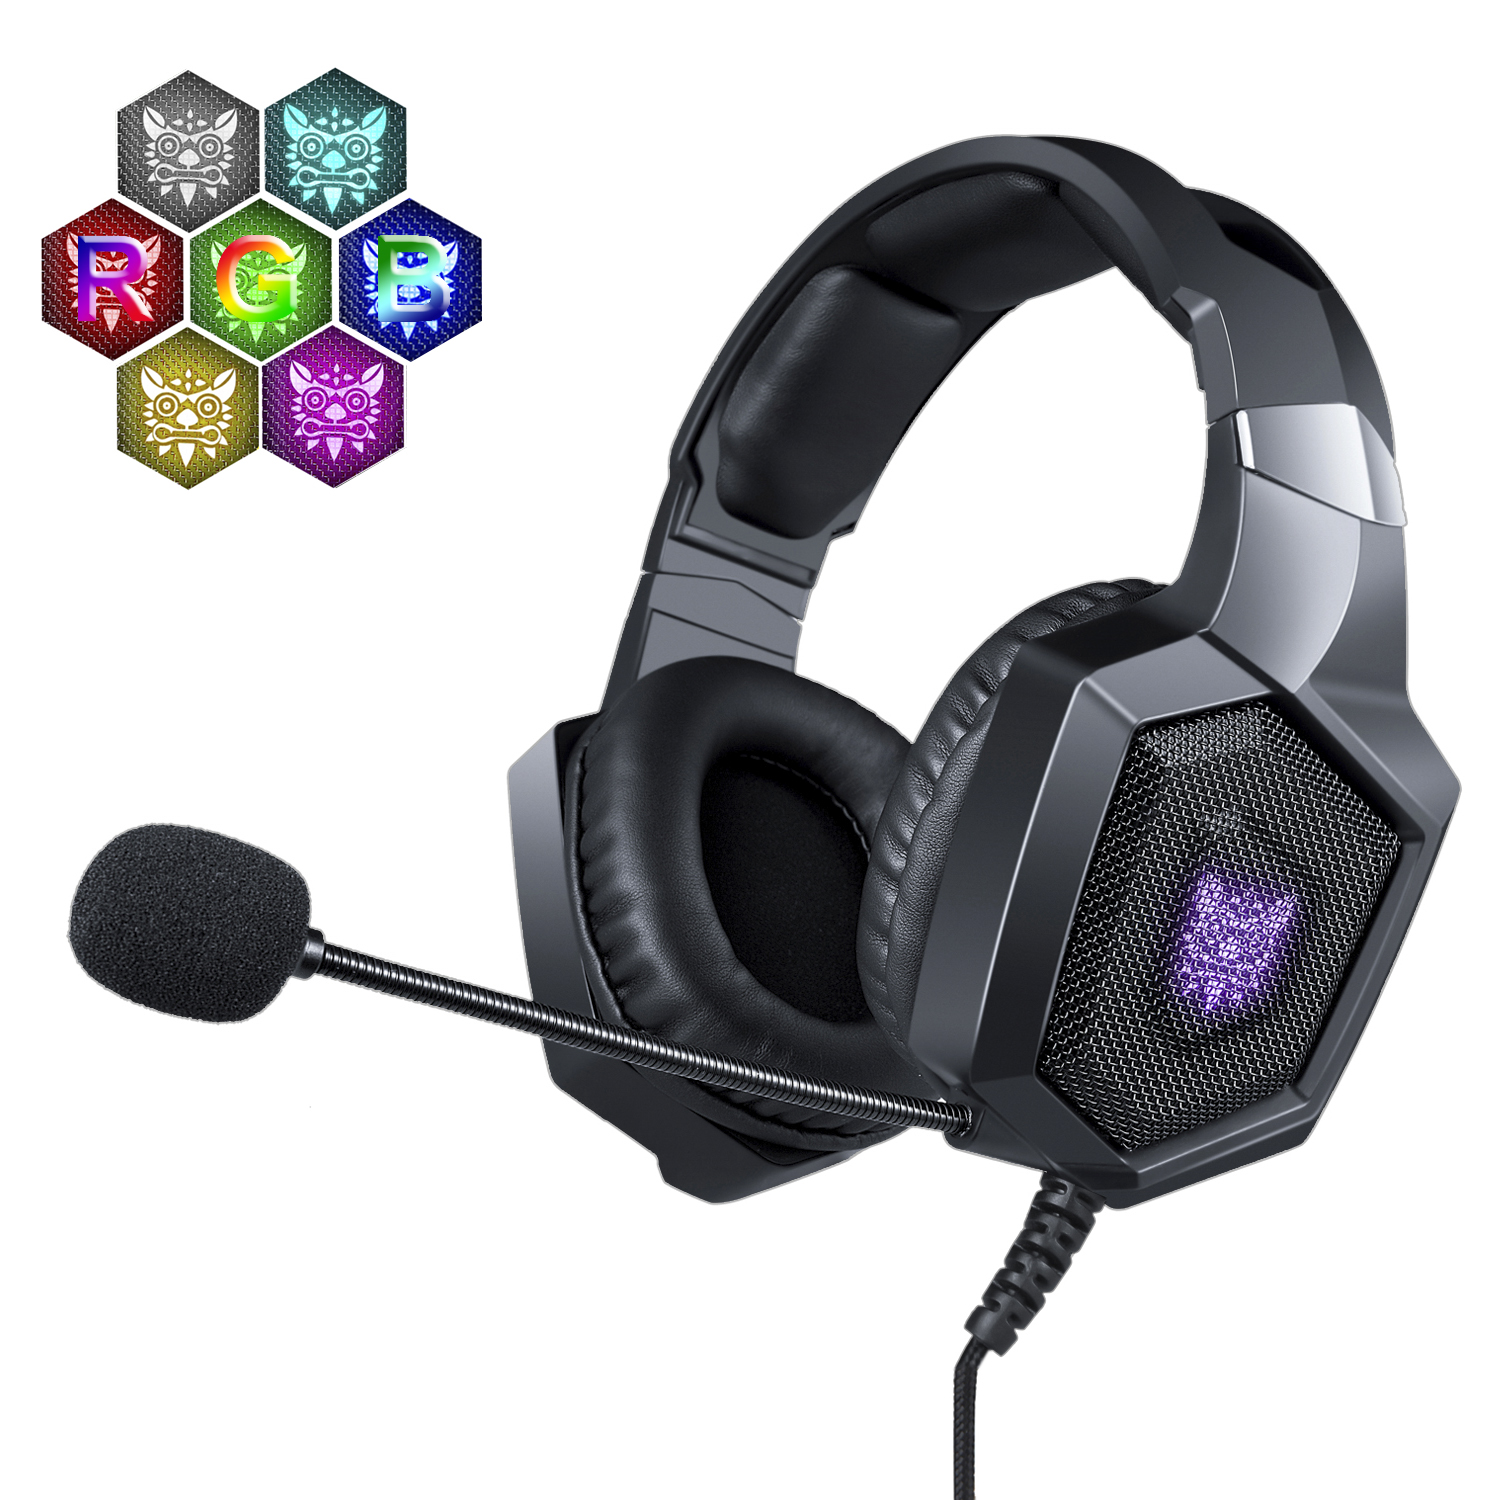 NERDI Stereo Gaming Headset Works On PS4/Xbox One/Nintendo Switch/PC/Mac/Laptop, Over Ear Headphones with Surround Sound,RGB LED Light & Noise Canceling Mic